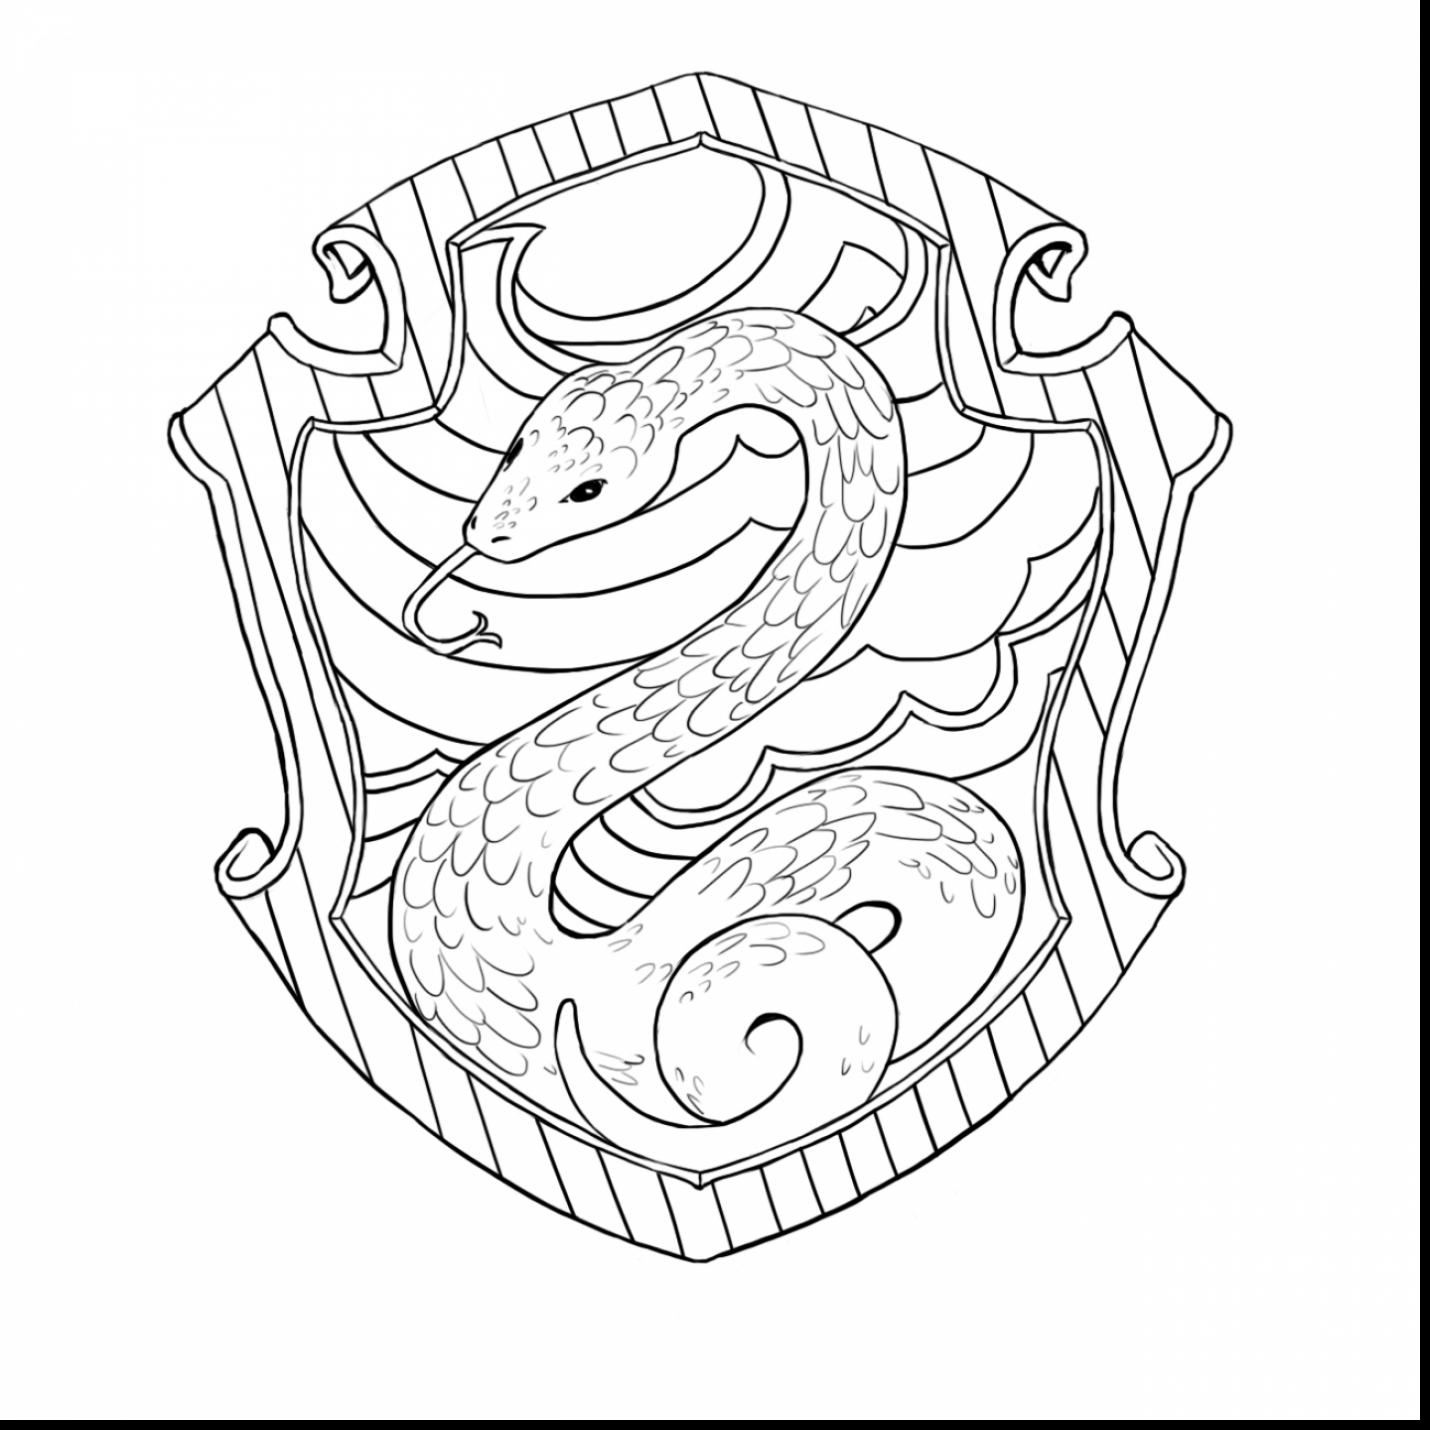 1430x1430 Brilliant Ravenclaw Crest Coloring Page With Harry Potter Coloring